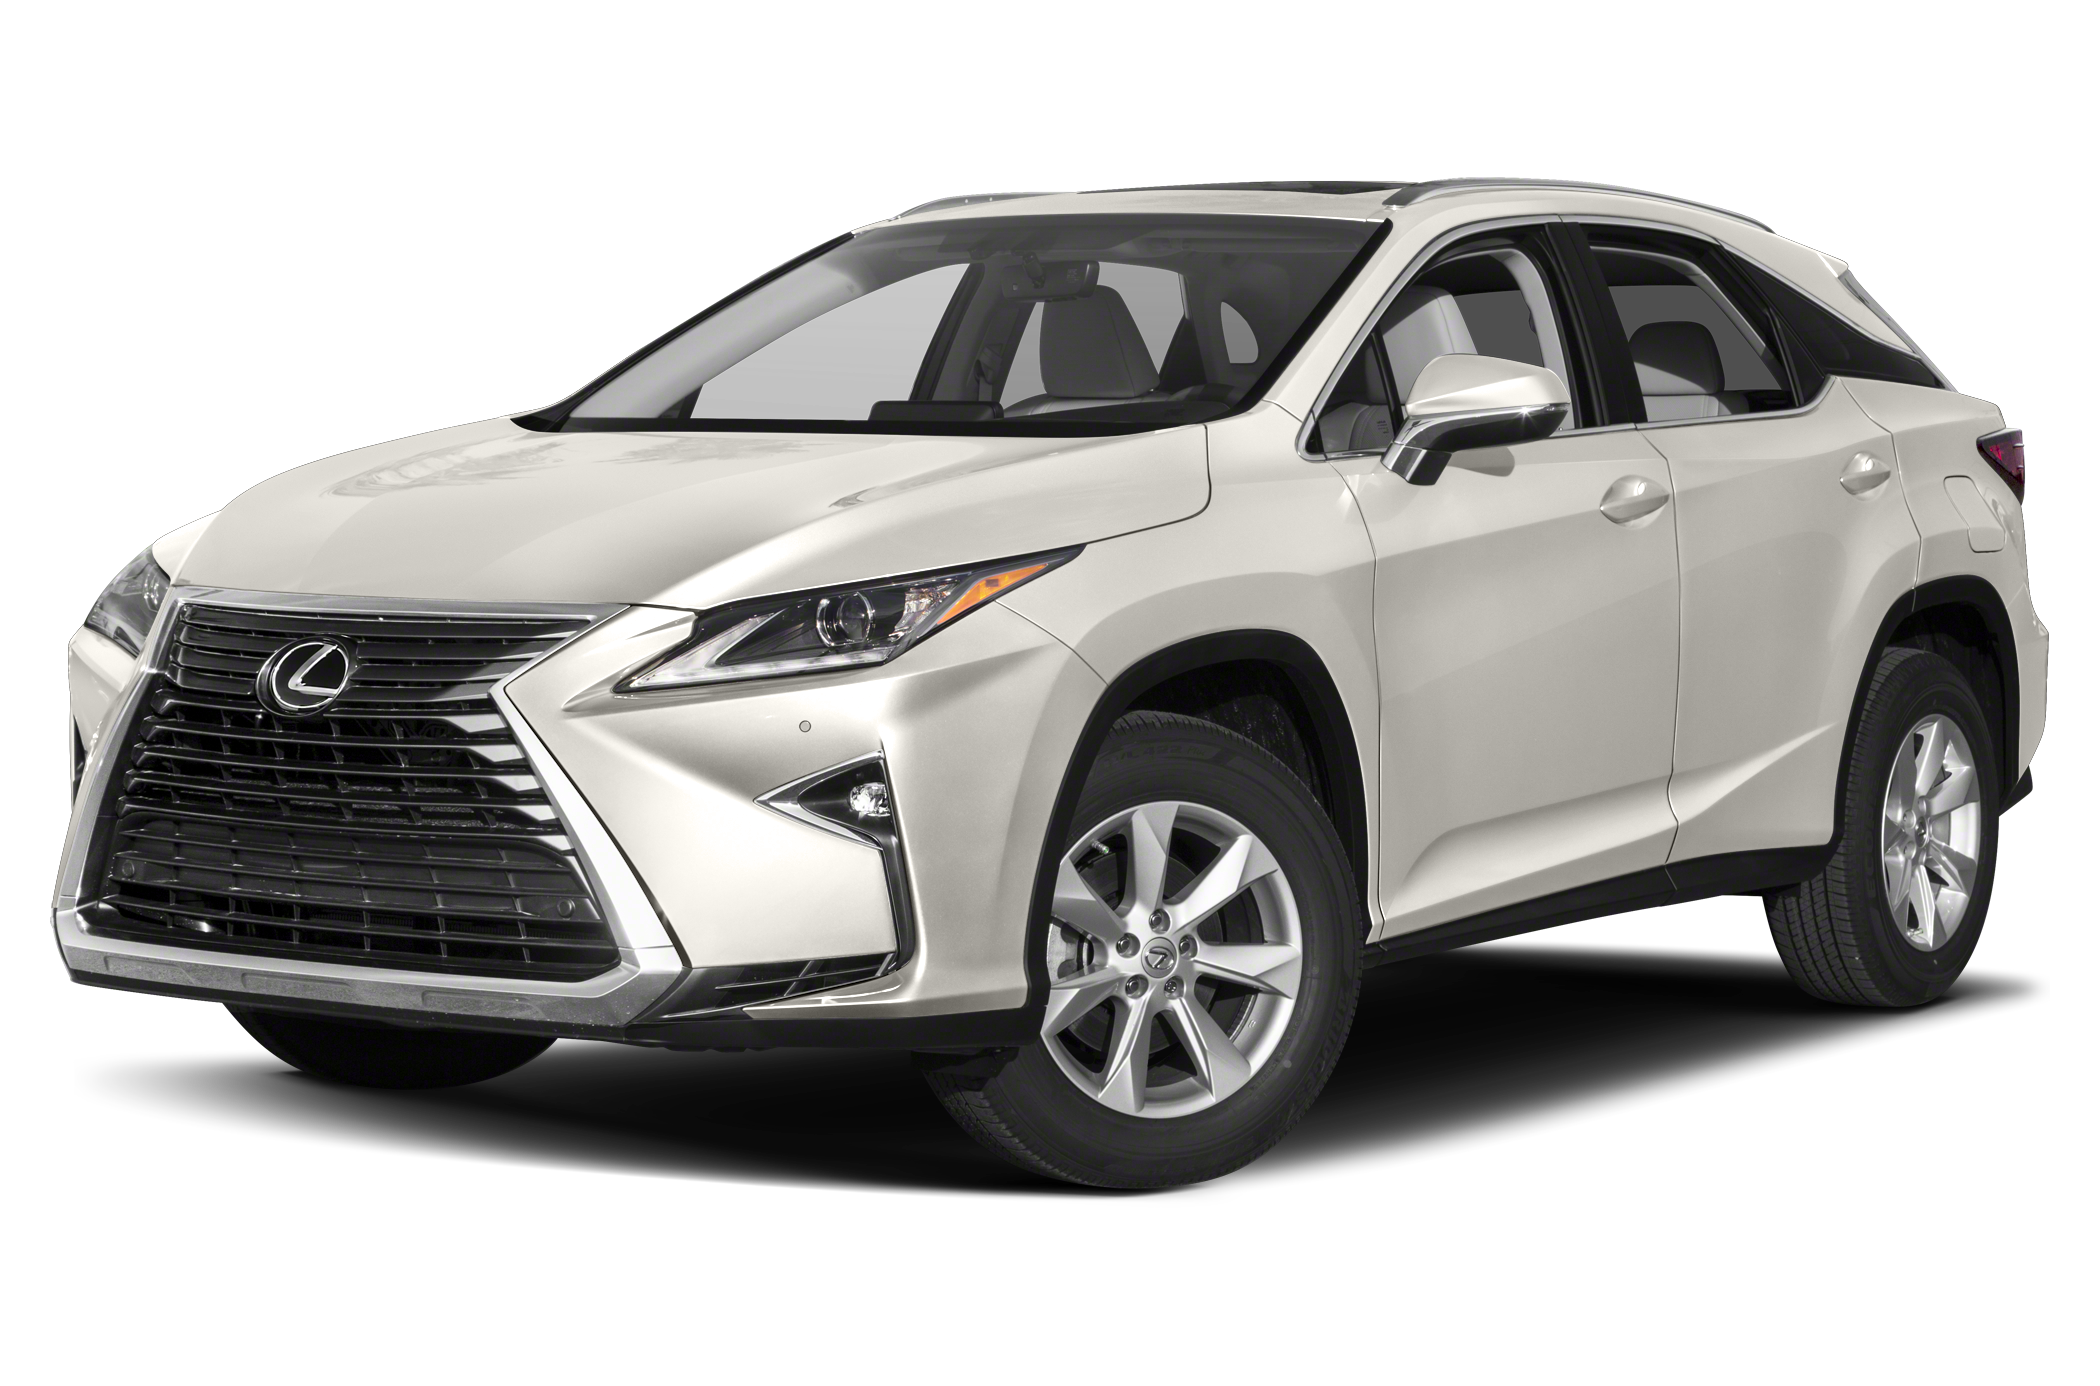 lexus unleaded off l only rx product awesomeamazinggreat awesome v lease awd suv regular